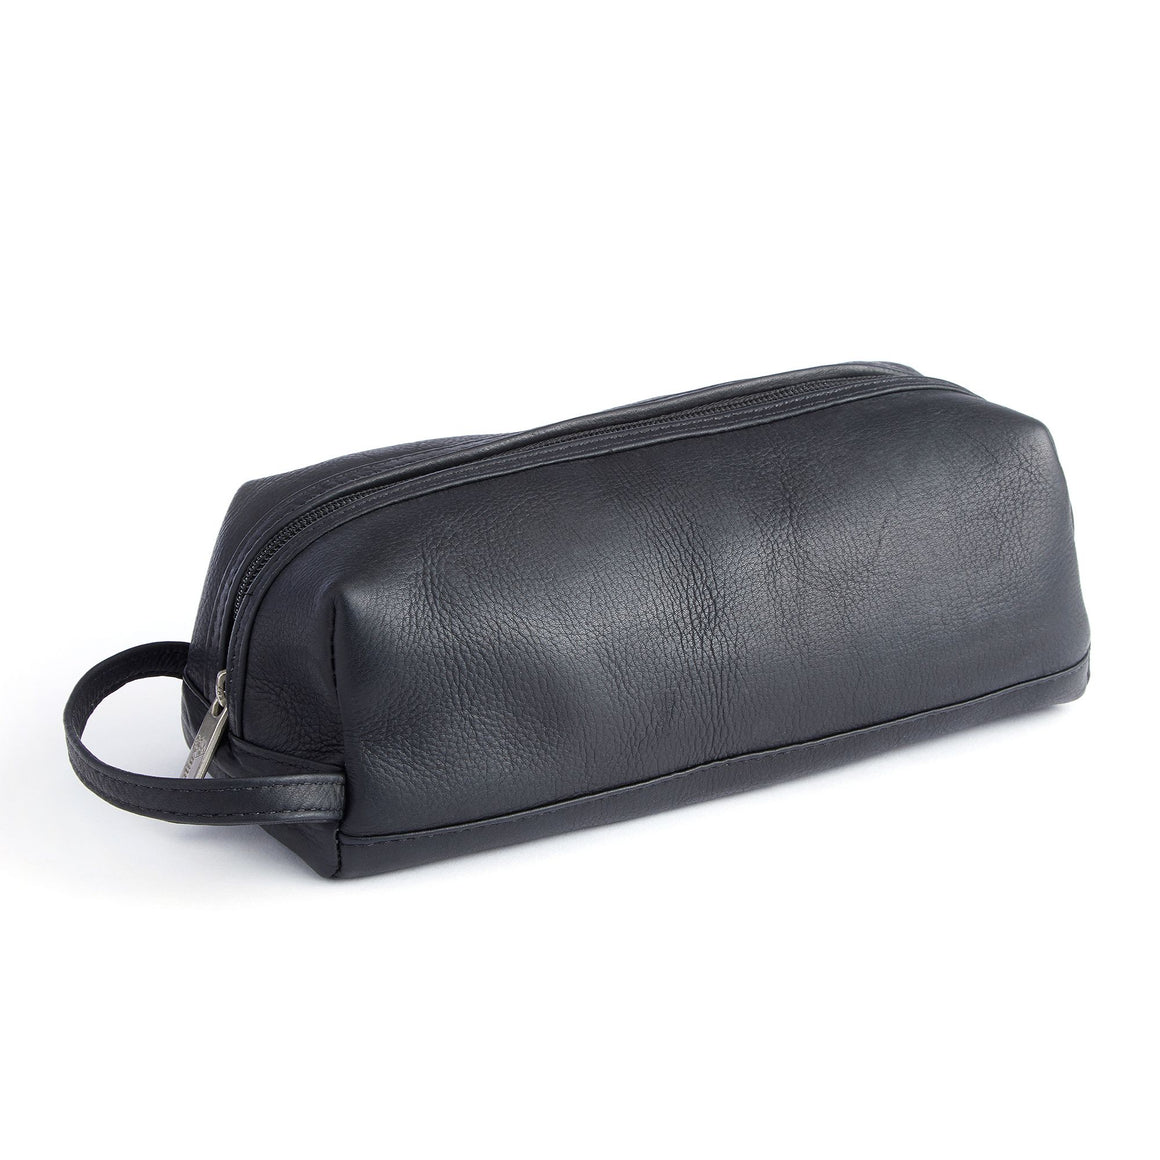 Royce Columbian Leather Travel Kit Black